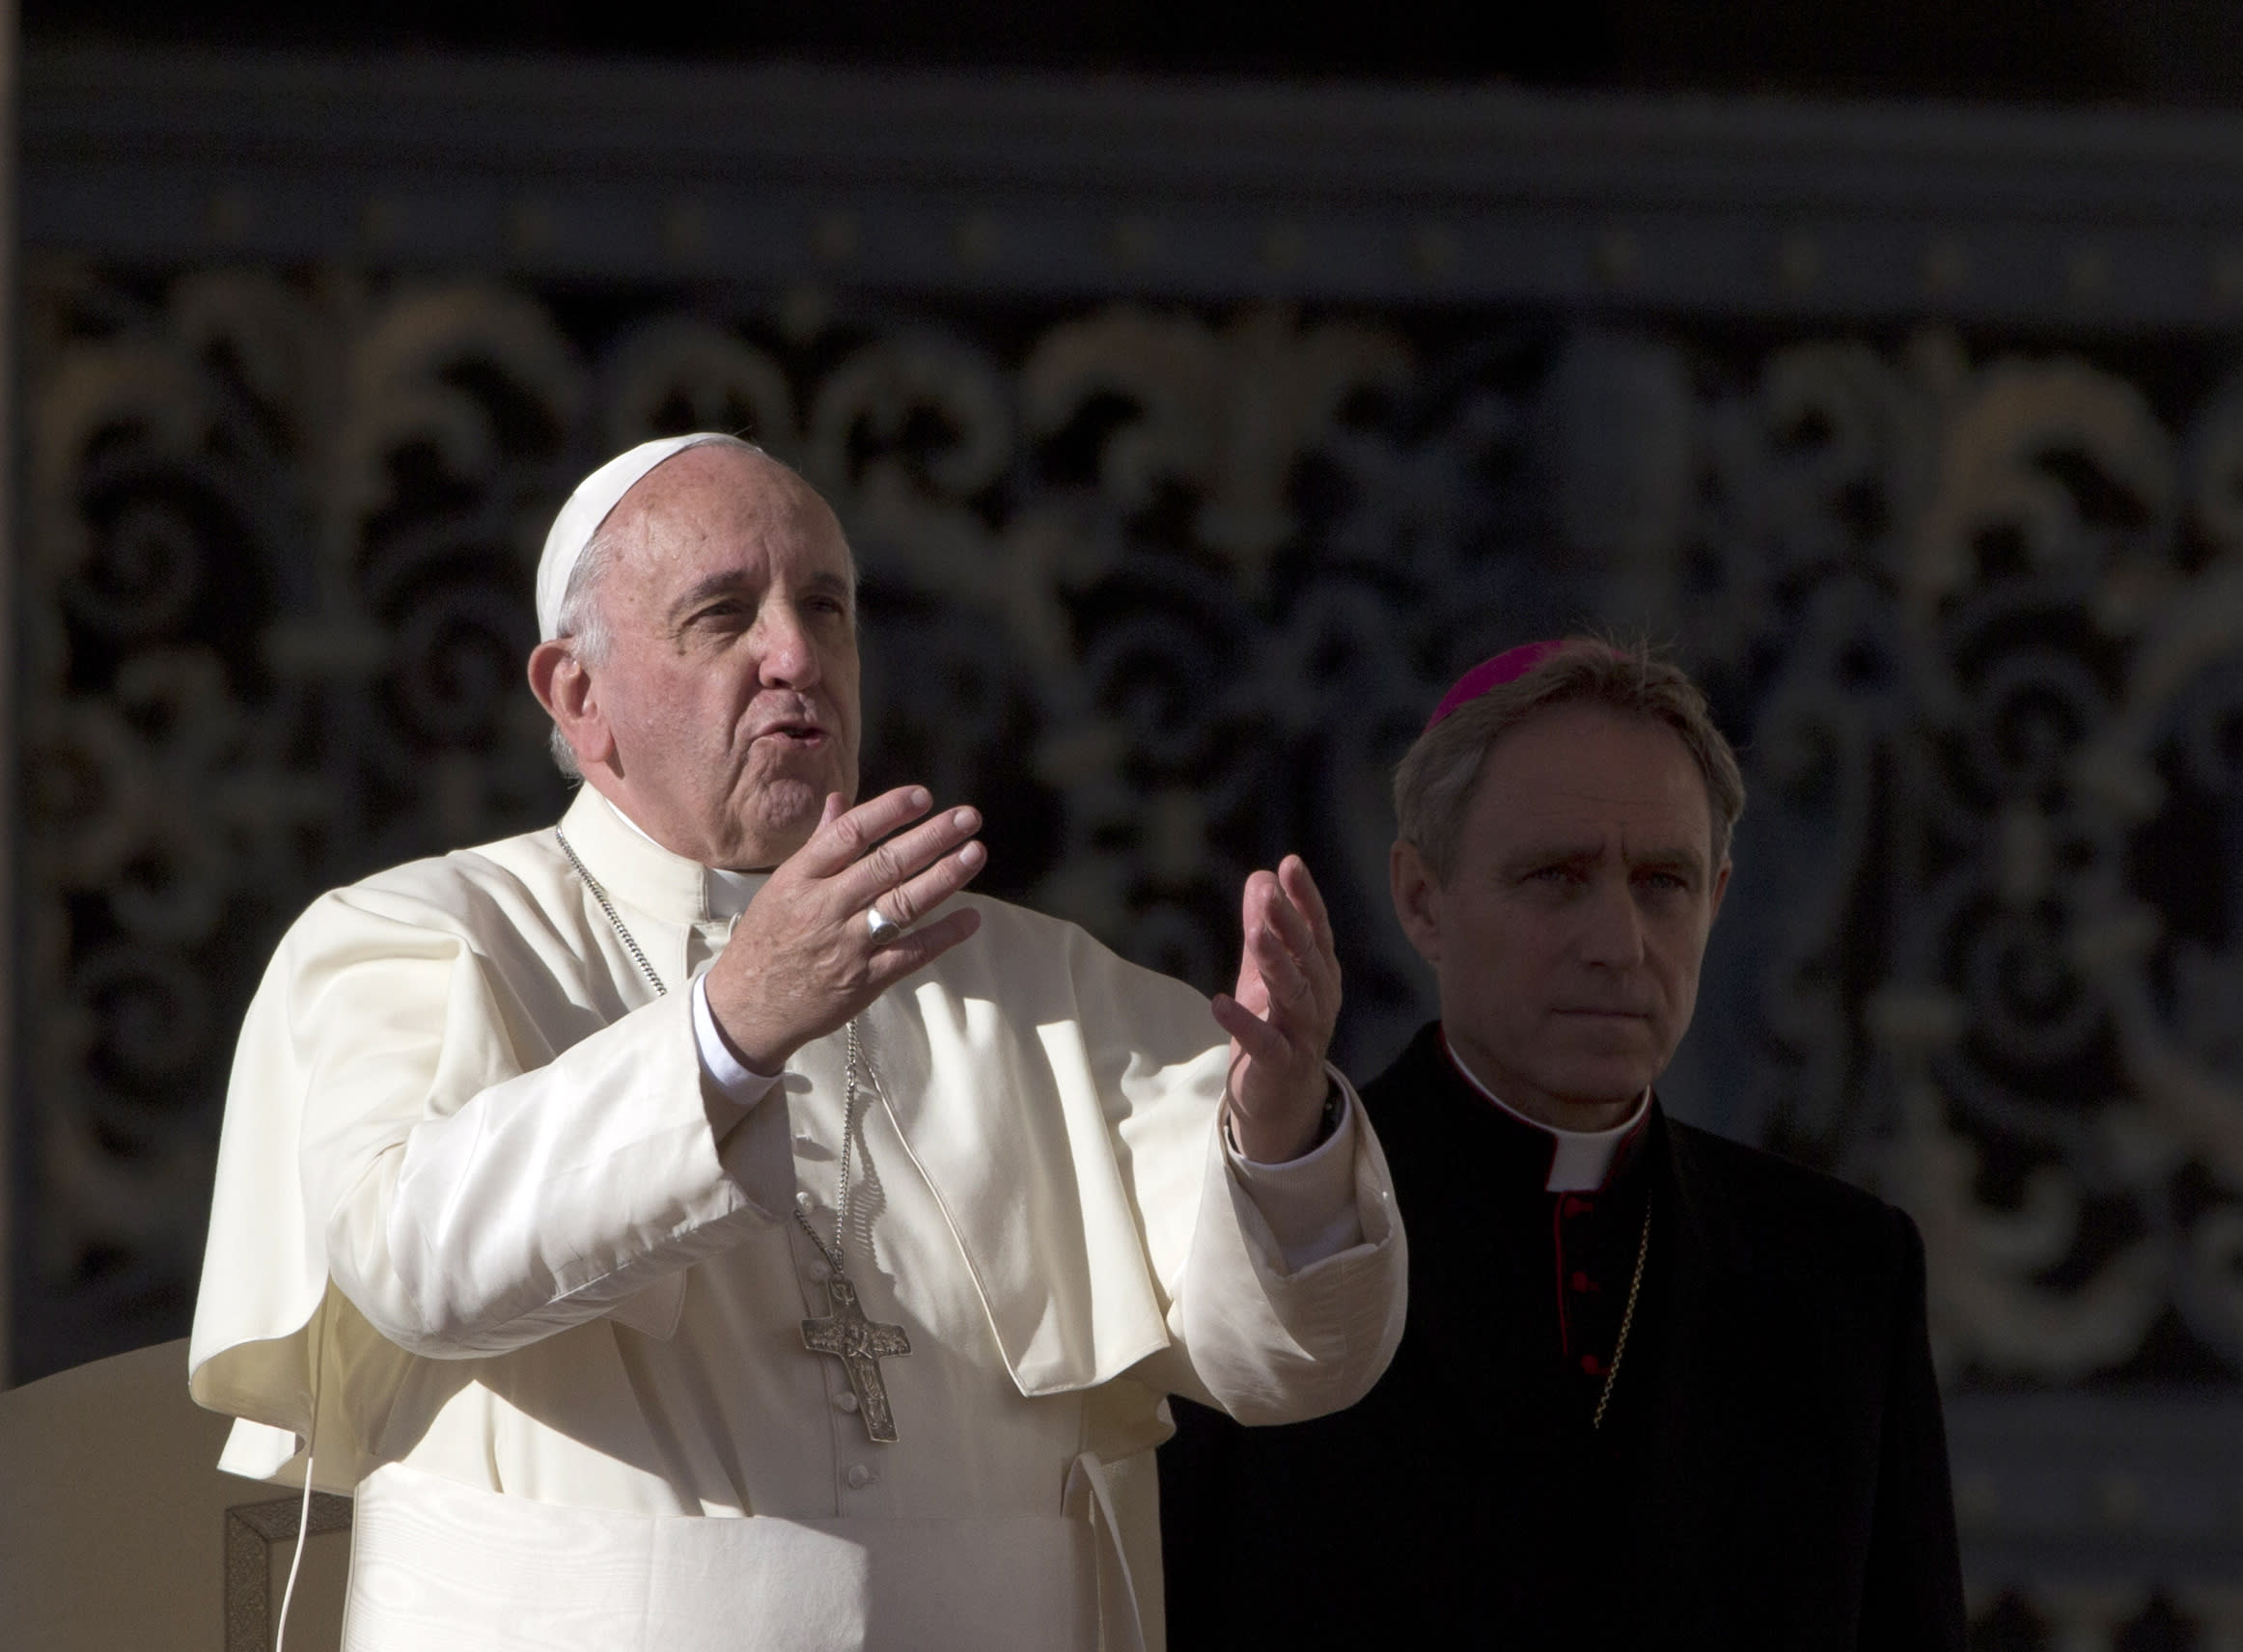 Pope praises the diplomacy of US-Cuba accord